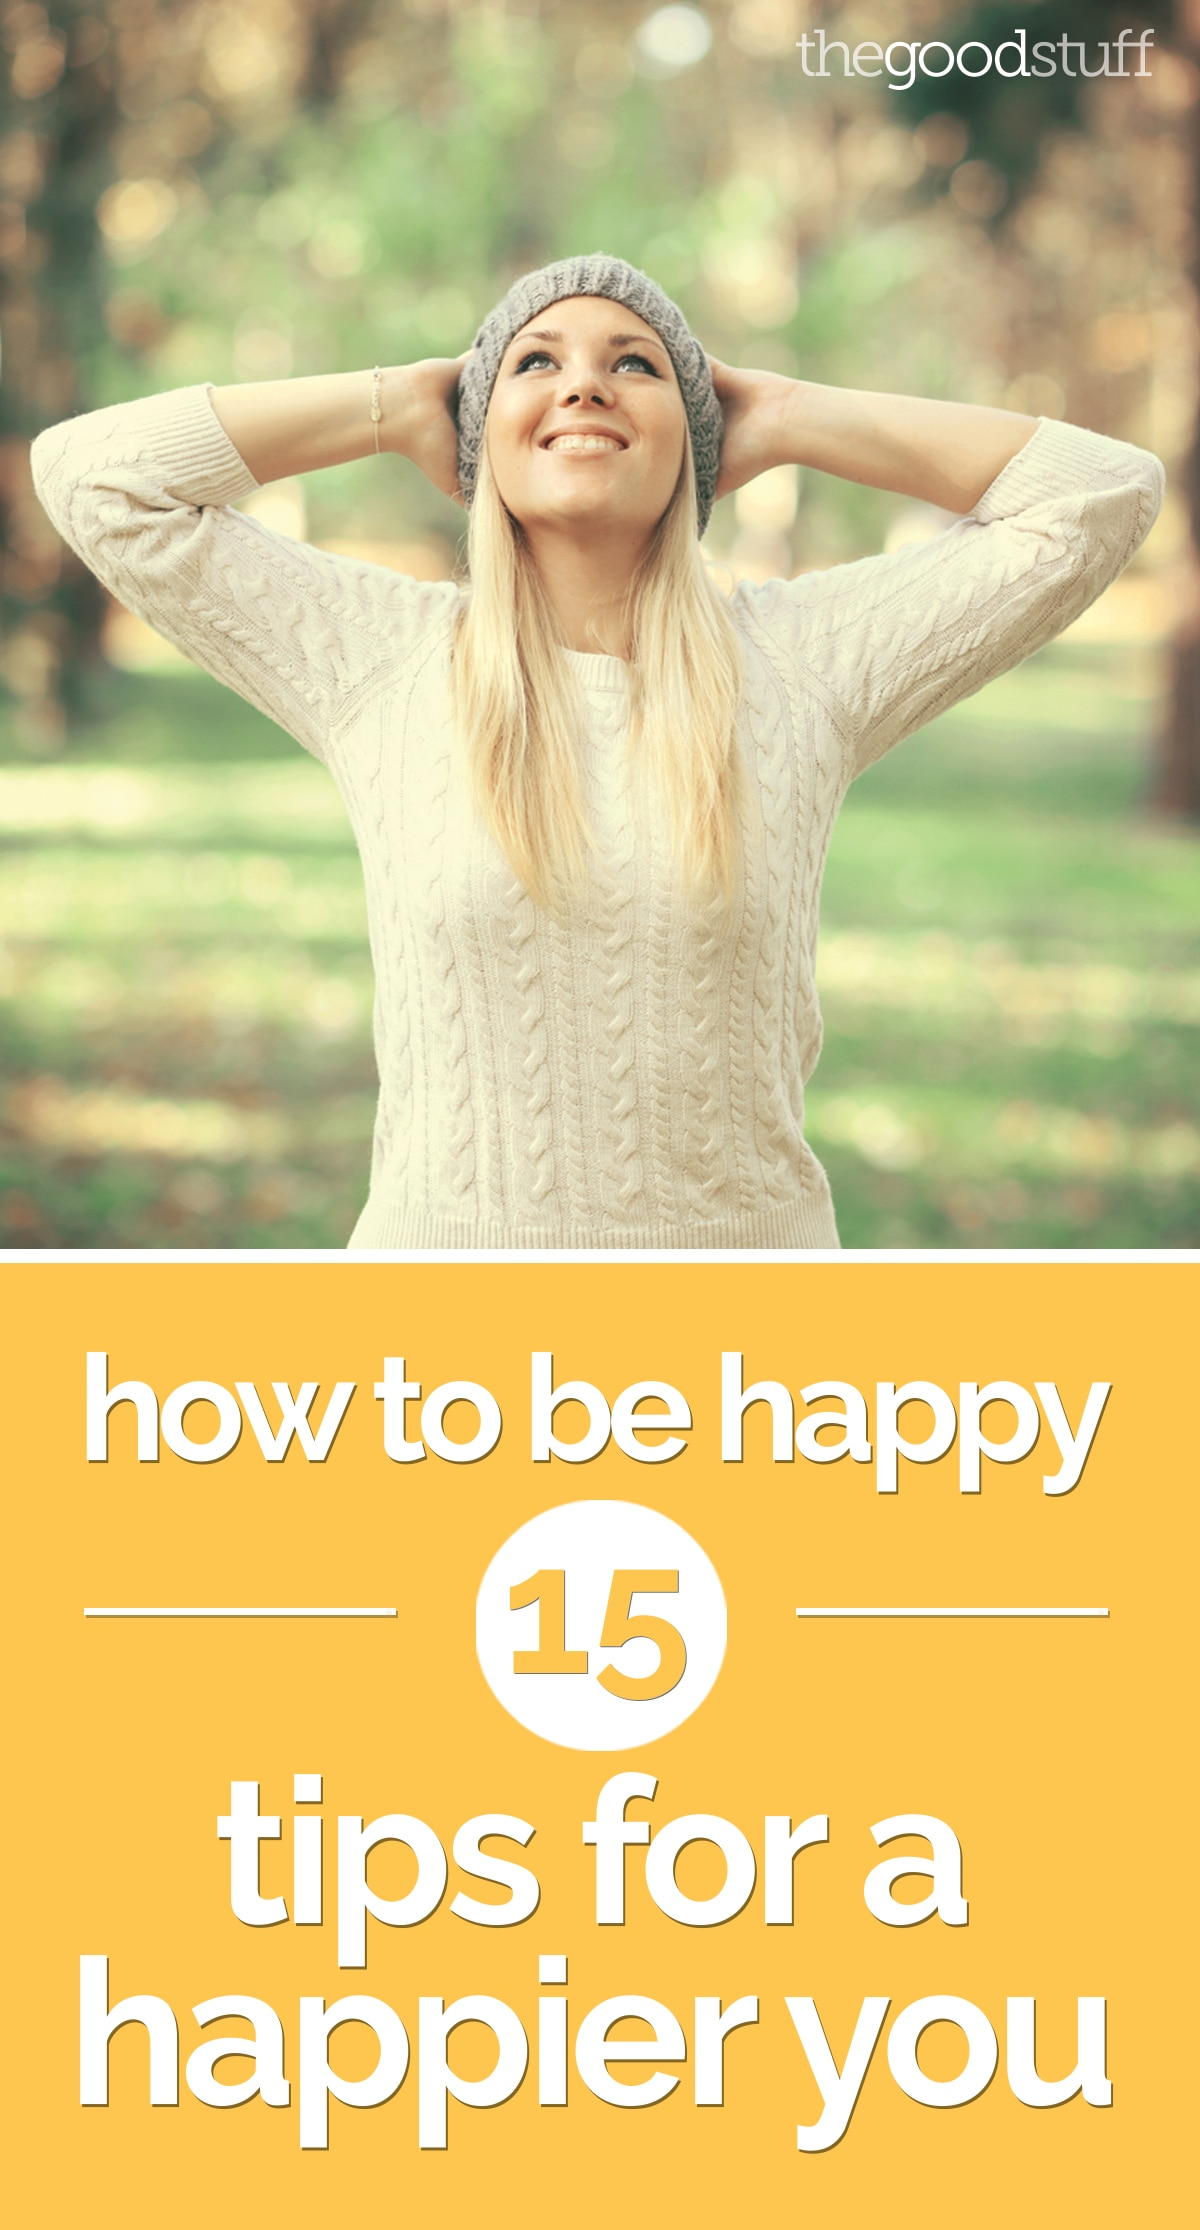 How to Be Happy: 15 Tips for a Happier You | the good stuff